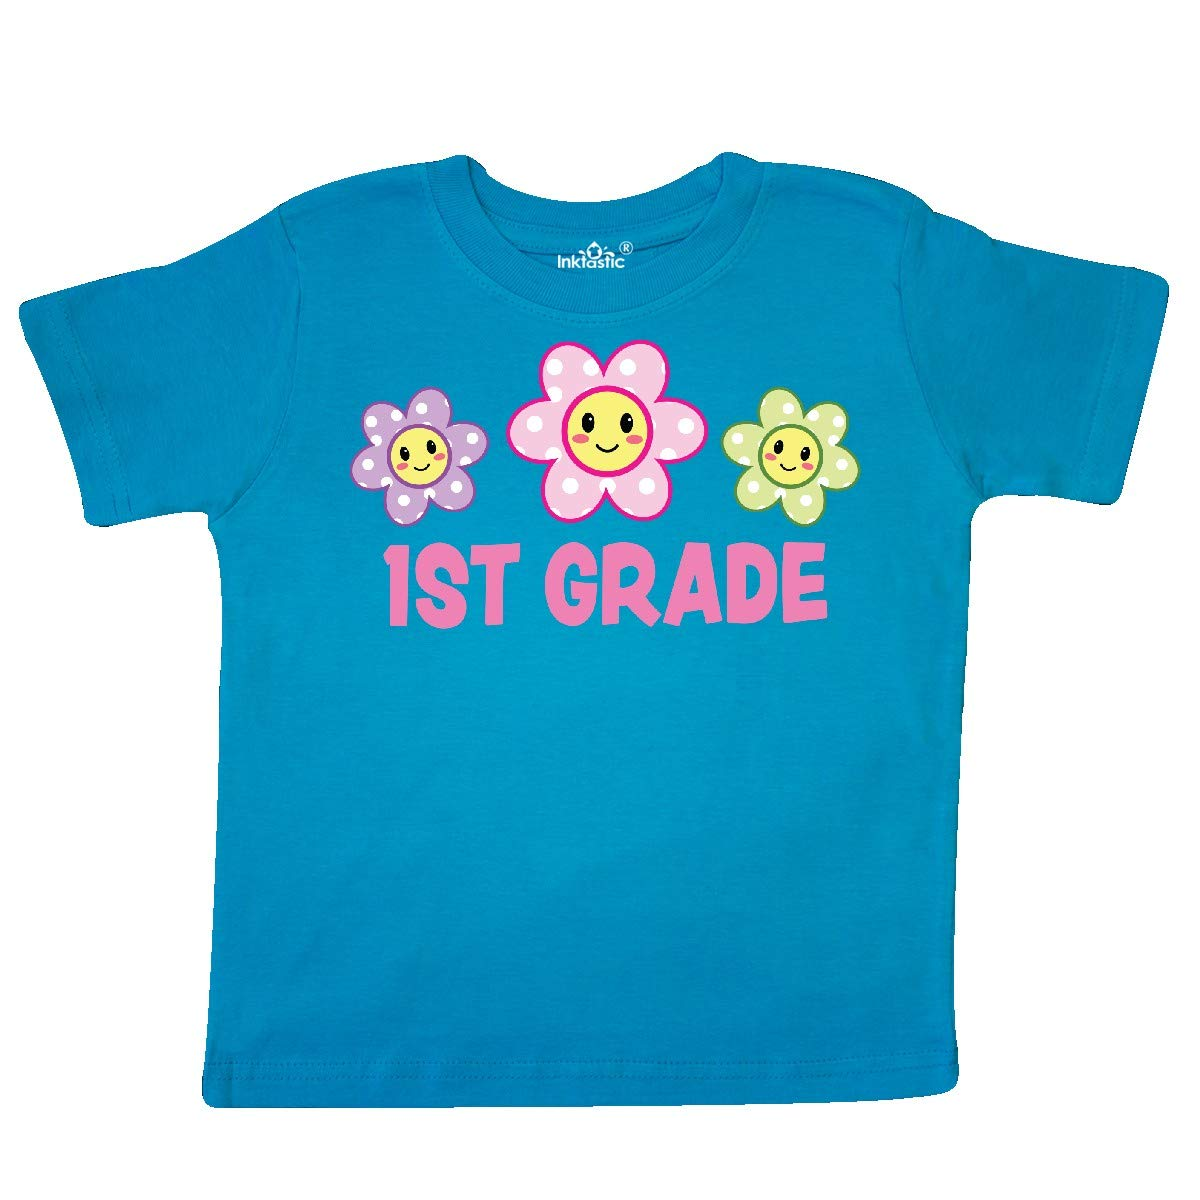 inktastic 1st Grade with Polka Dot Flowers Toddler T-Shirt